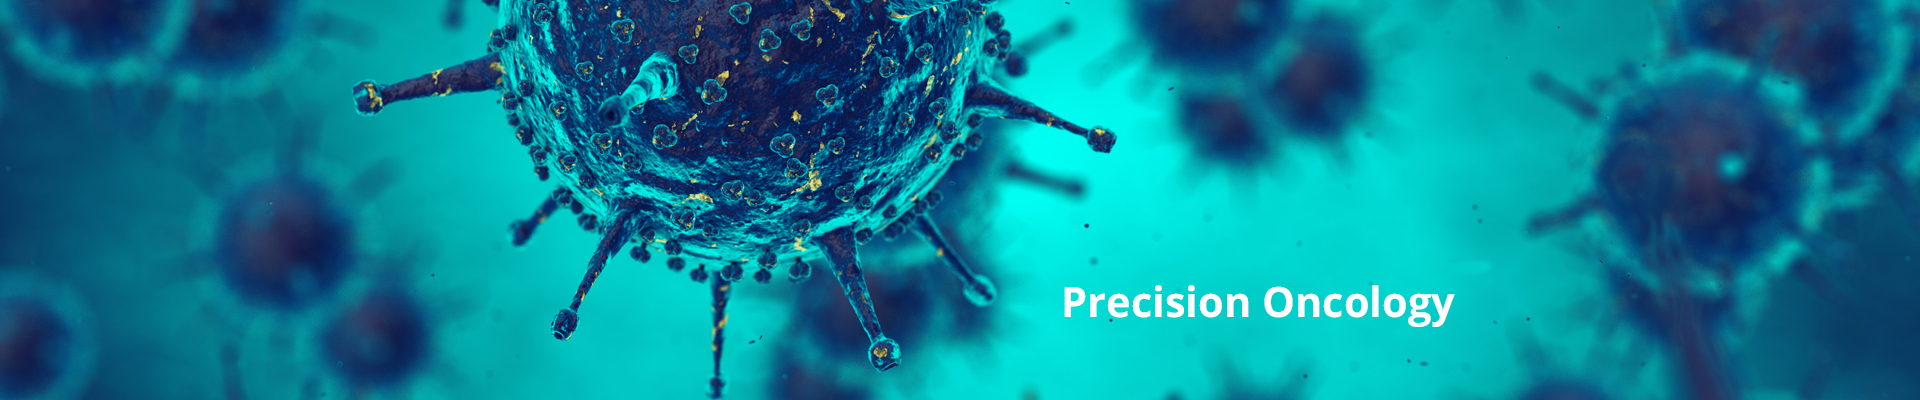 Precision-Oncology-V2